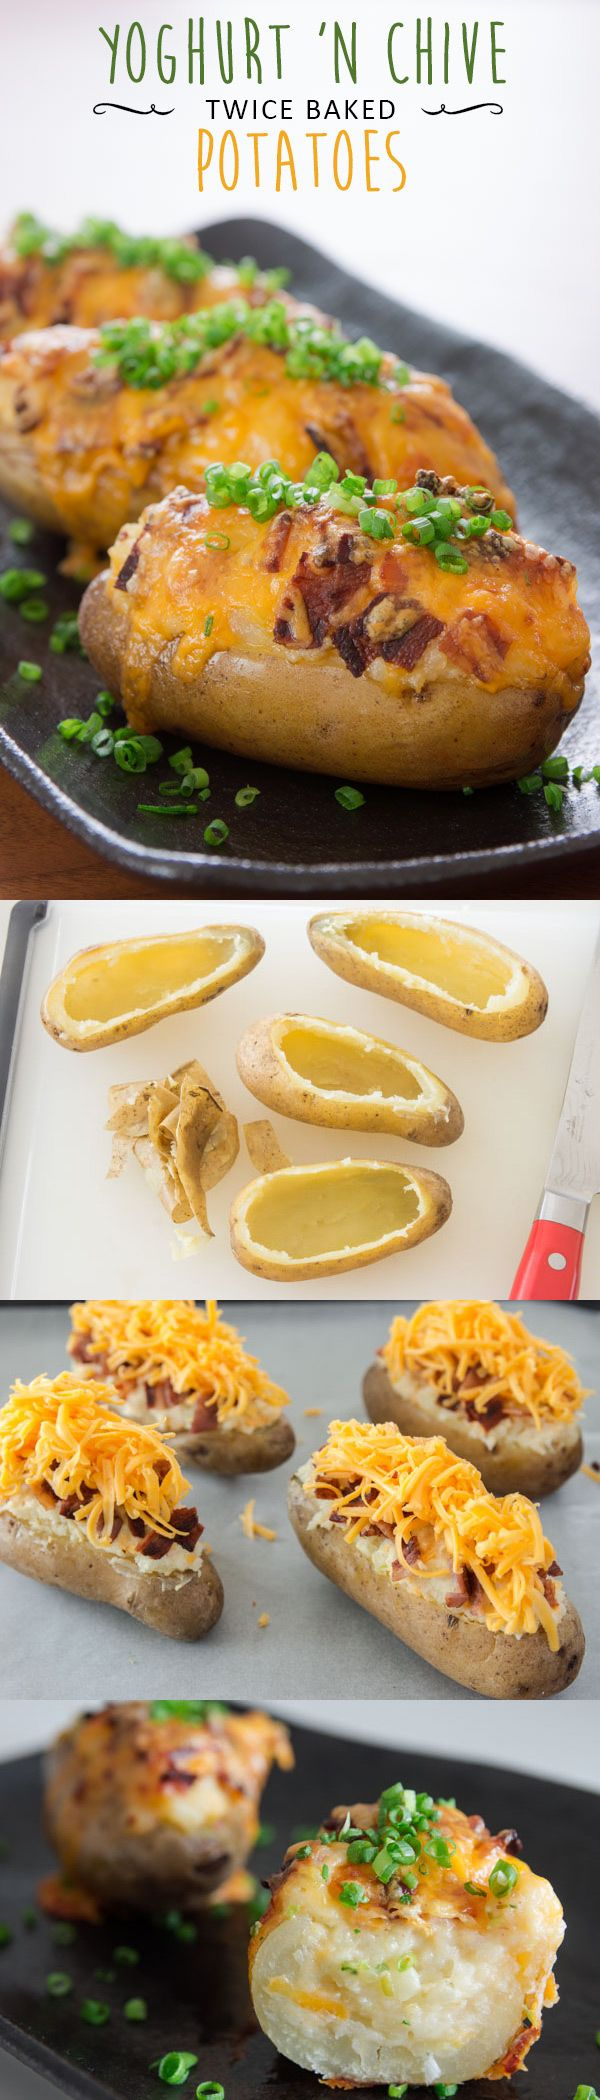 These twice baked potatoes taste like sour cream and chive potato chips with bacon and cheese. Creamy, savory and delicious!